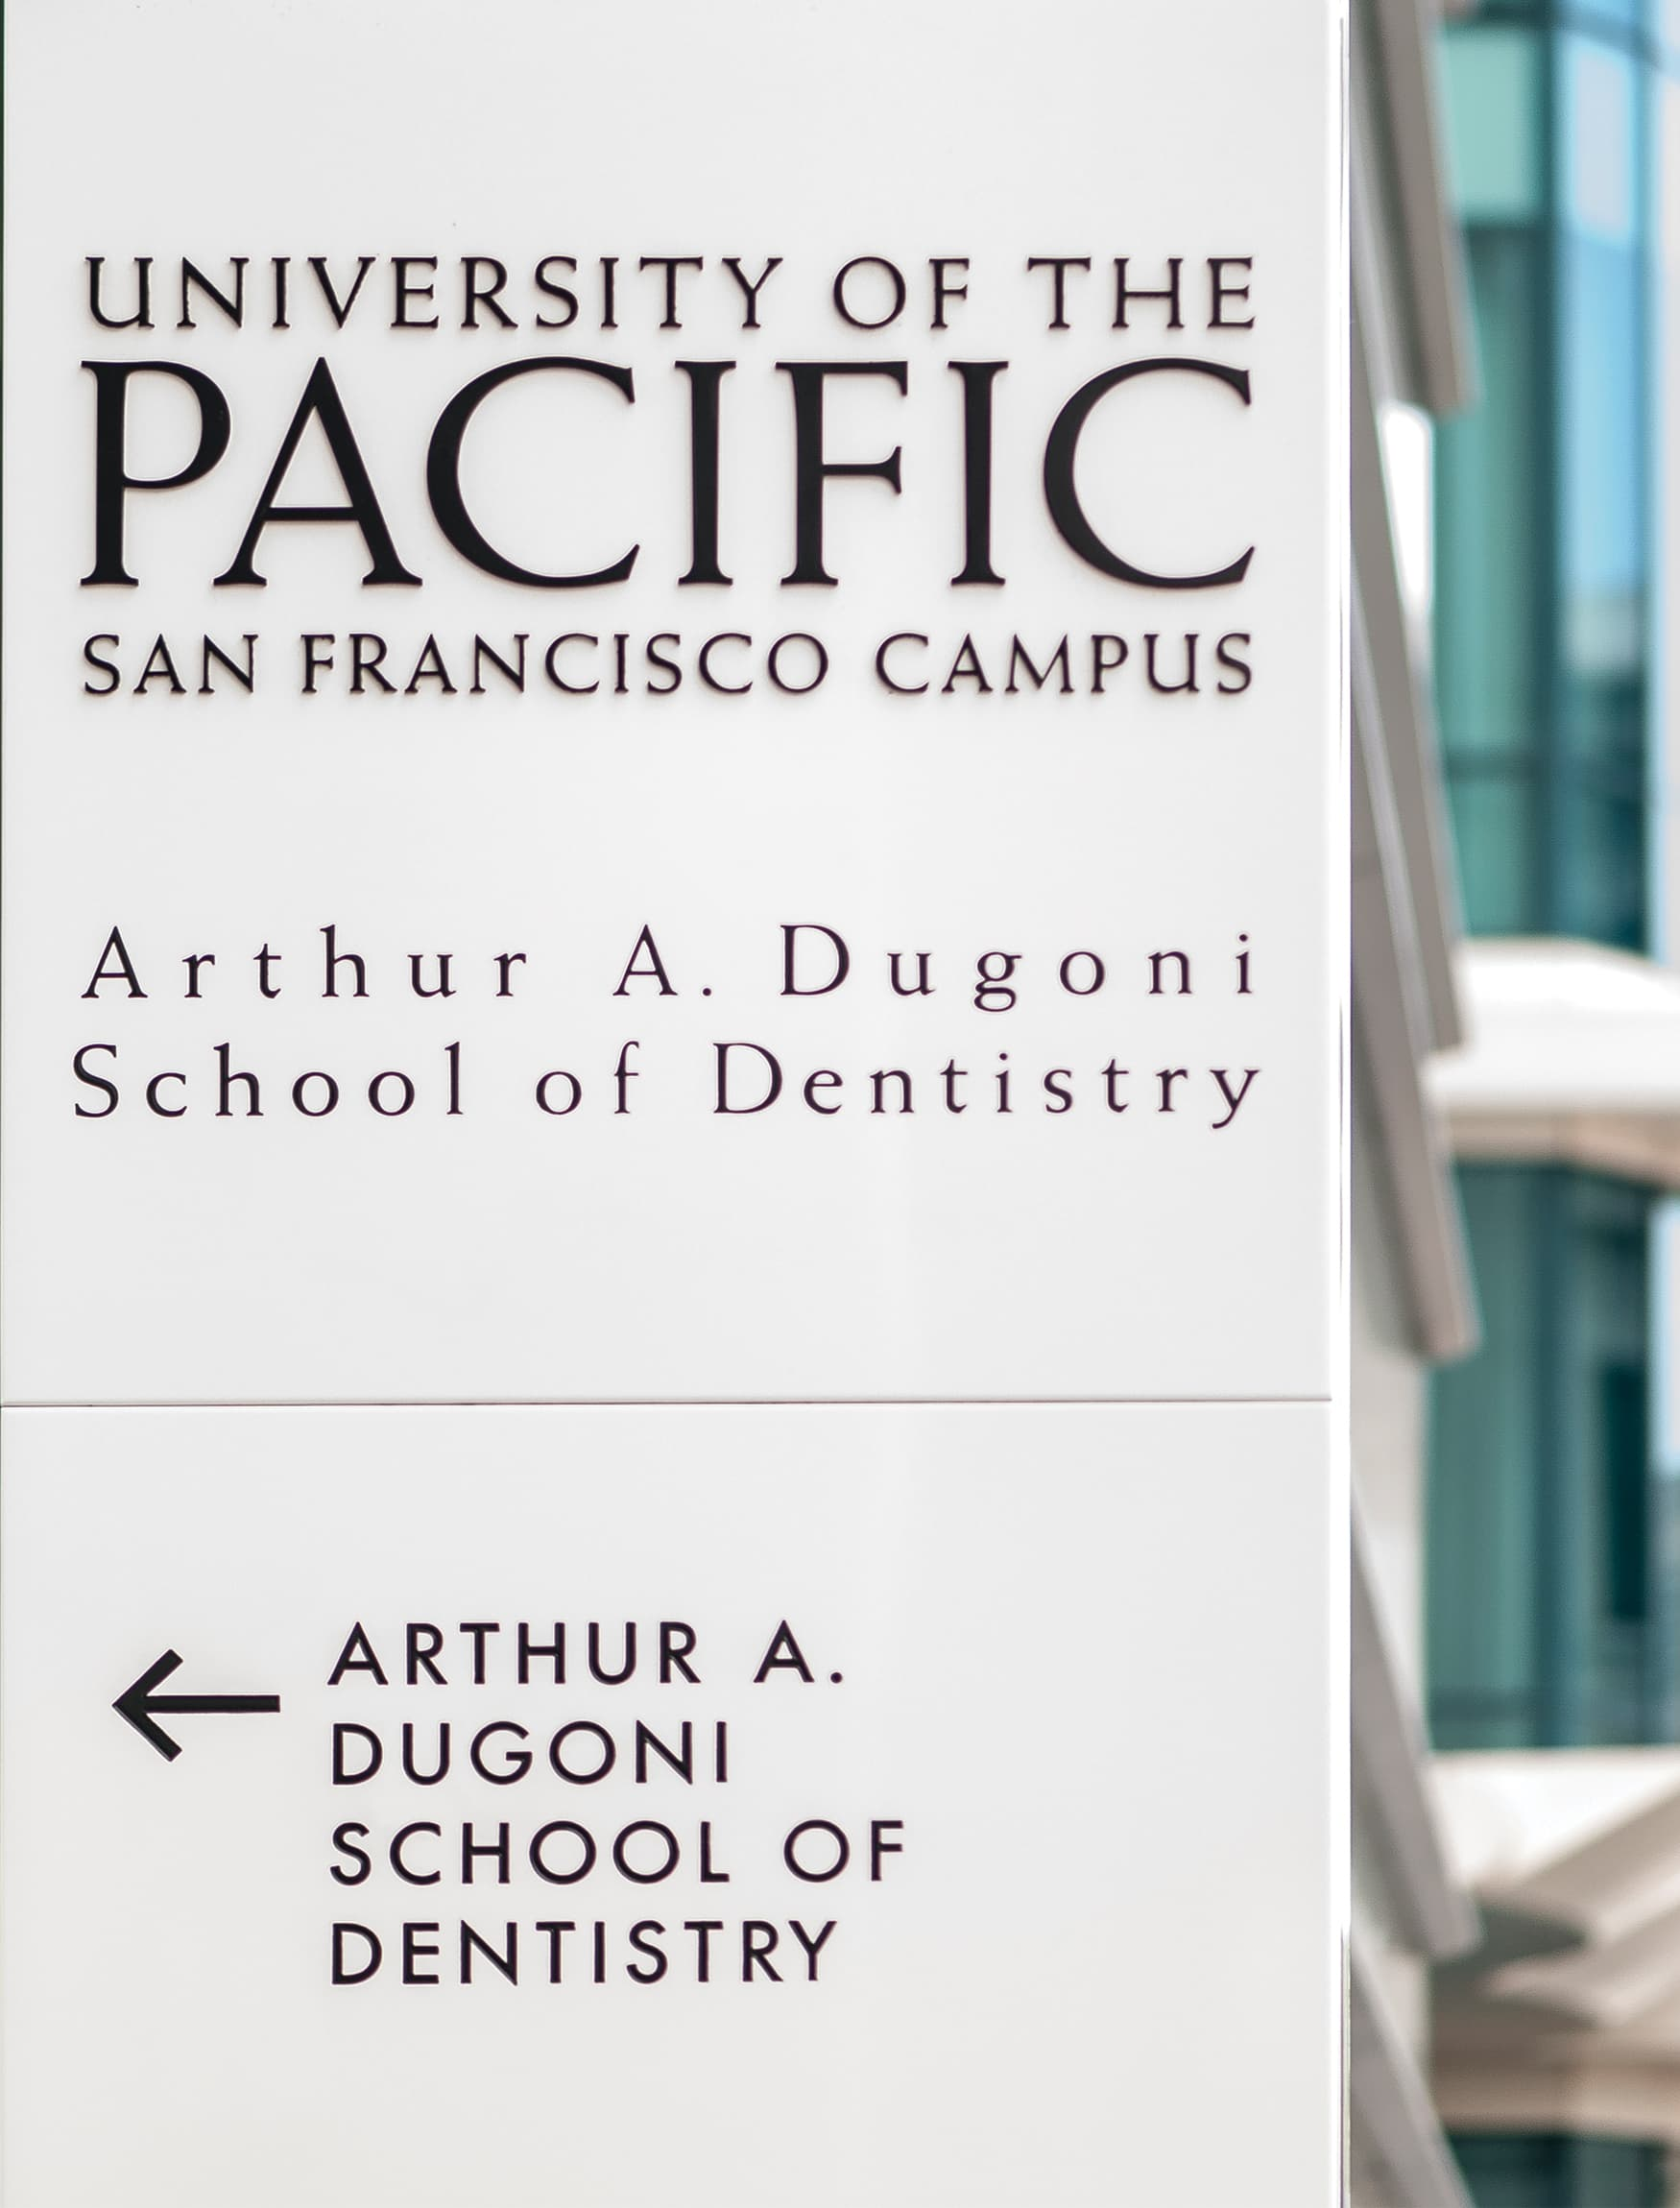 University of the Pacific, Education Design and Healthcare Design in San Francisco, California. Project Identity totem and pedestrian directional wayfinding.